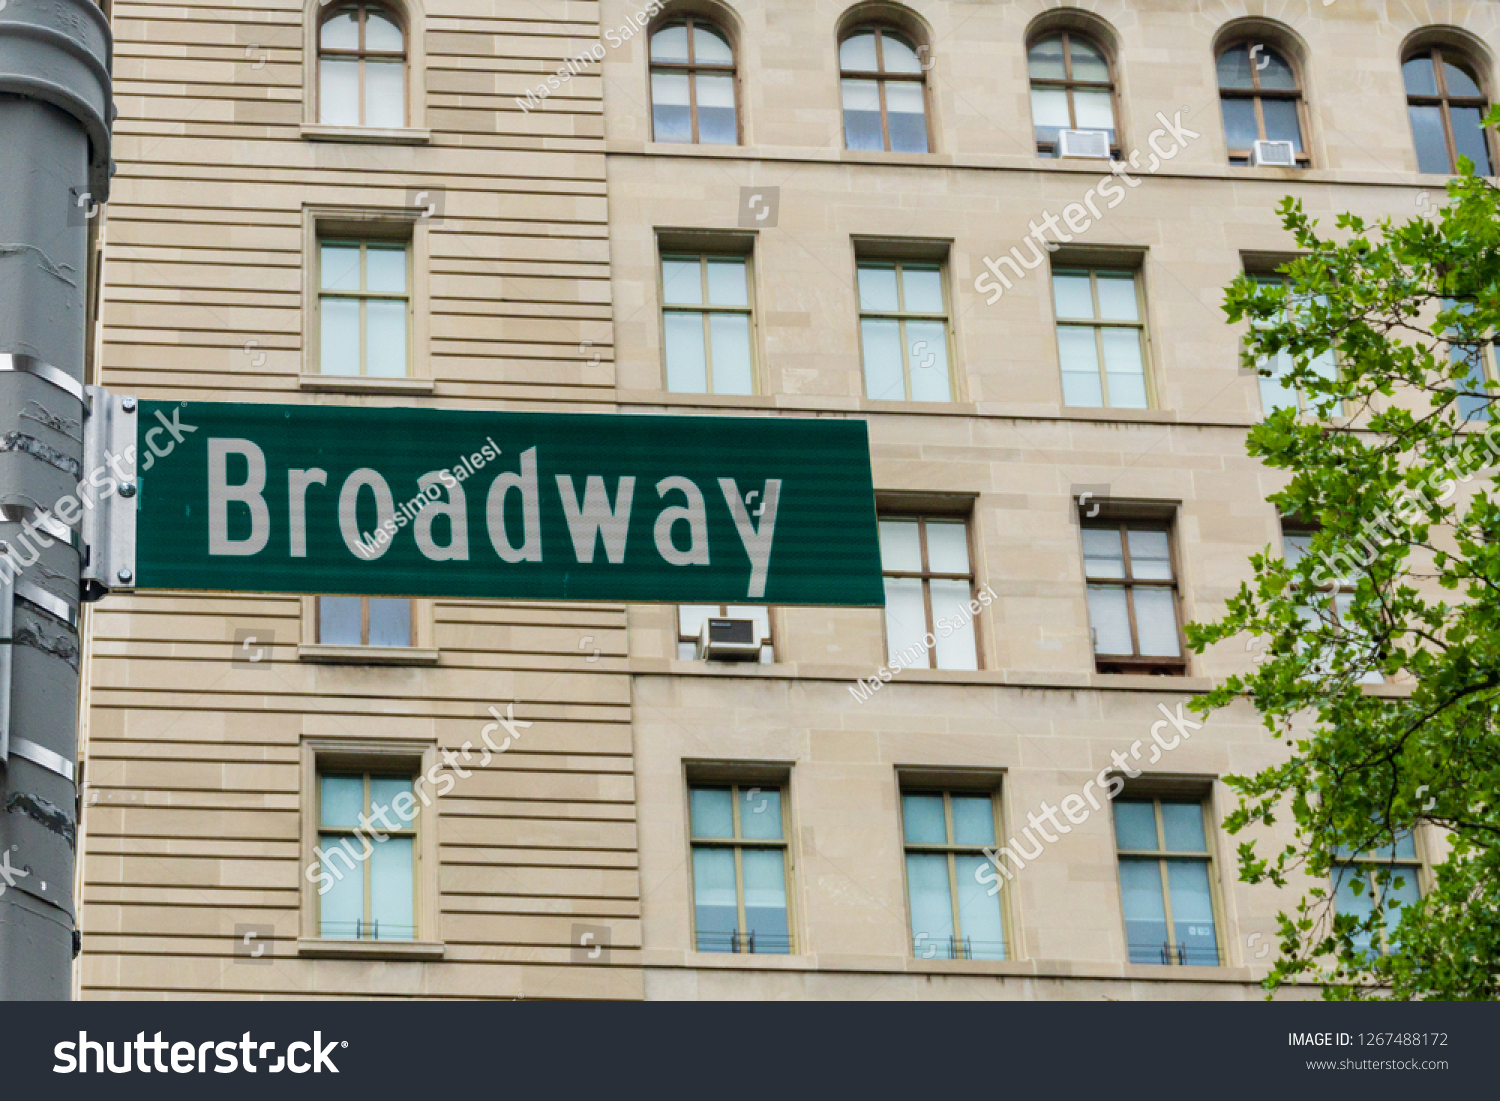 New York, USA - August 20, 2018: Broadway street sign in Manhattan, New York City. #1267488172